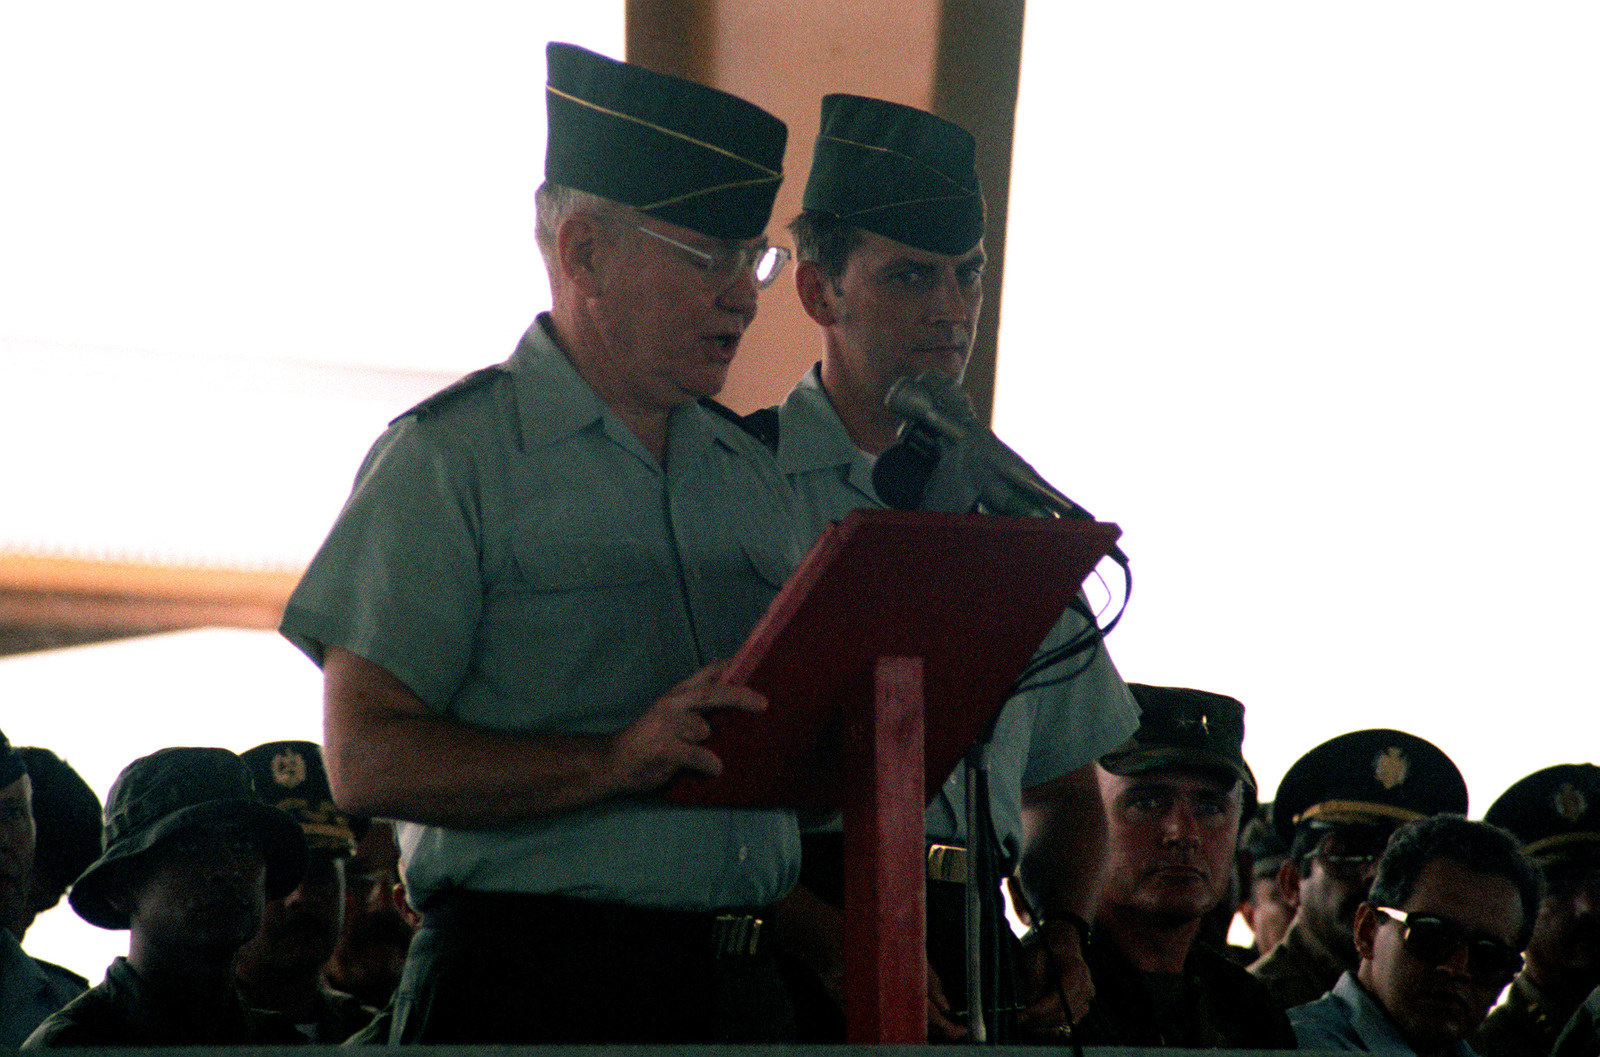 General Paul Gorman of the Southern Command speaks at the graduation ceremony for the 2nd Honduran Artillery Battalion, after their completion of a combat training course conducted by the 319th Field Artillery during the Ahuas Tara II (Big Pine) operation. (Substandard image)